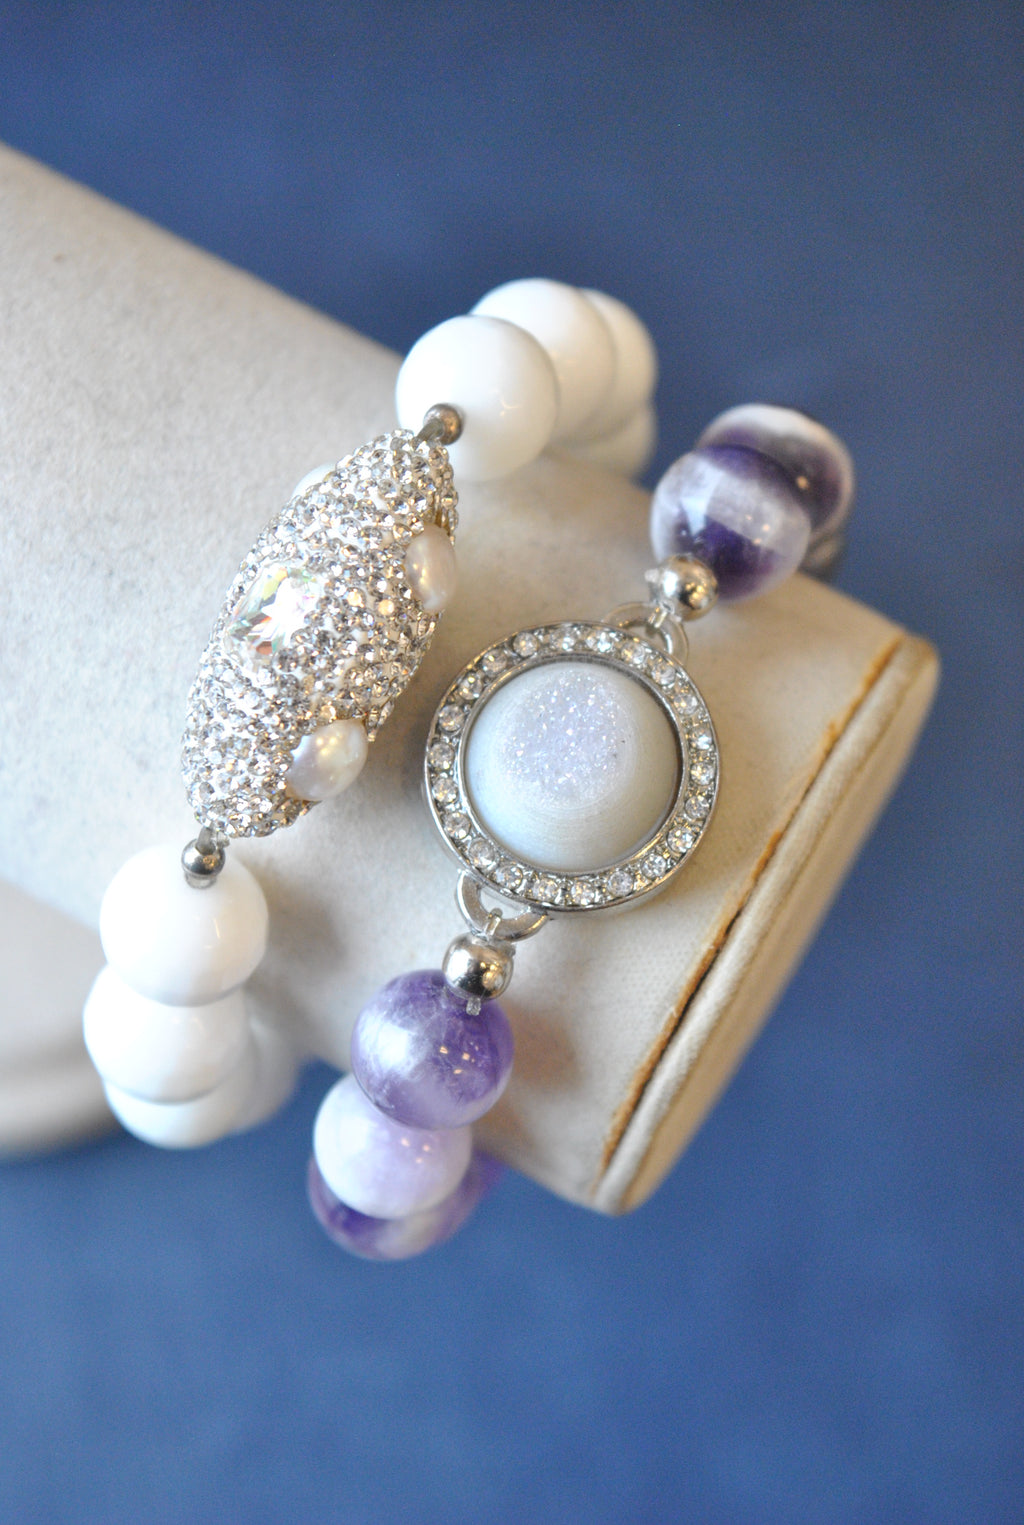 AMETHYST WHITE ONYX DRUZY AND SWAROVSKI CRYSTALS STRETCHY BRACELET SET